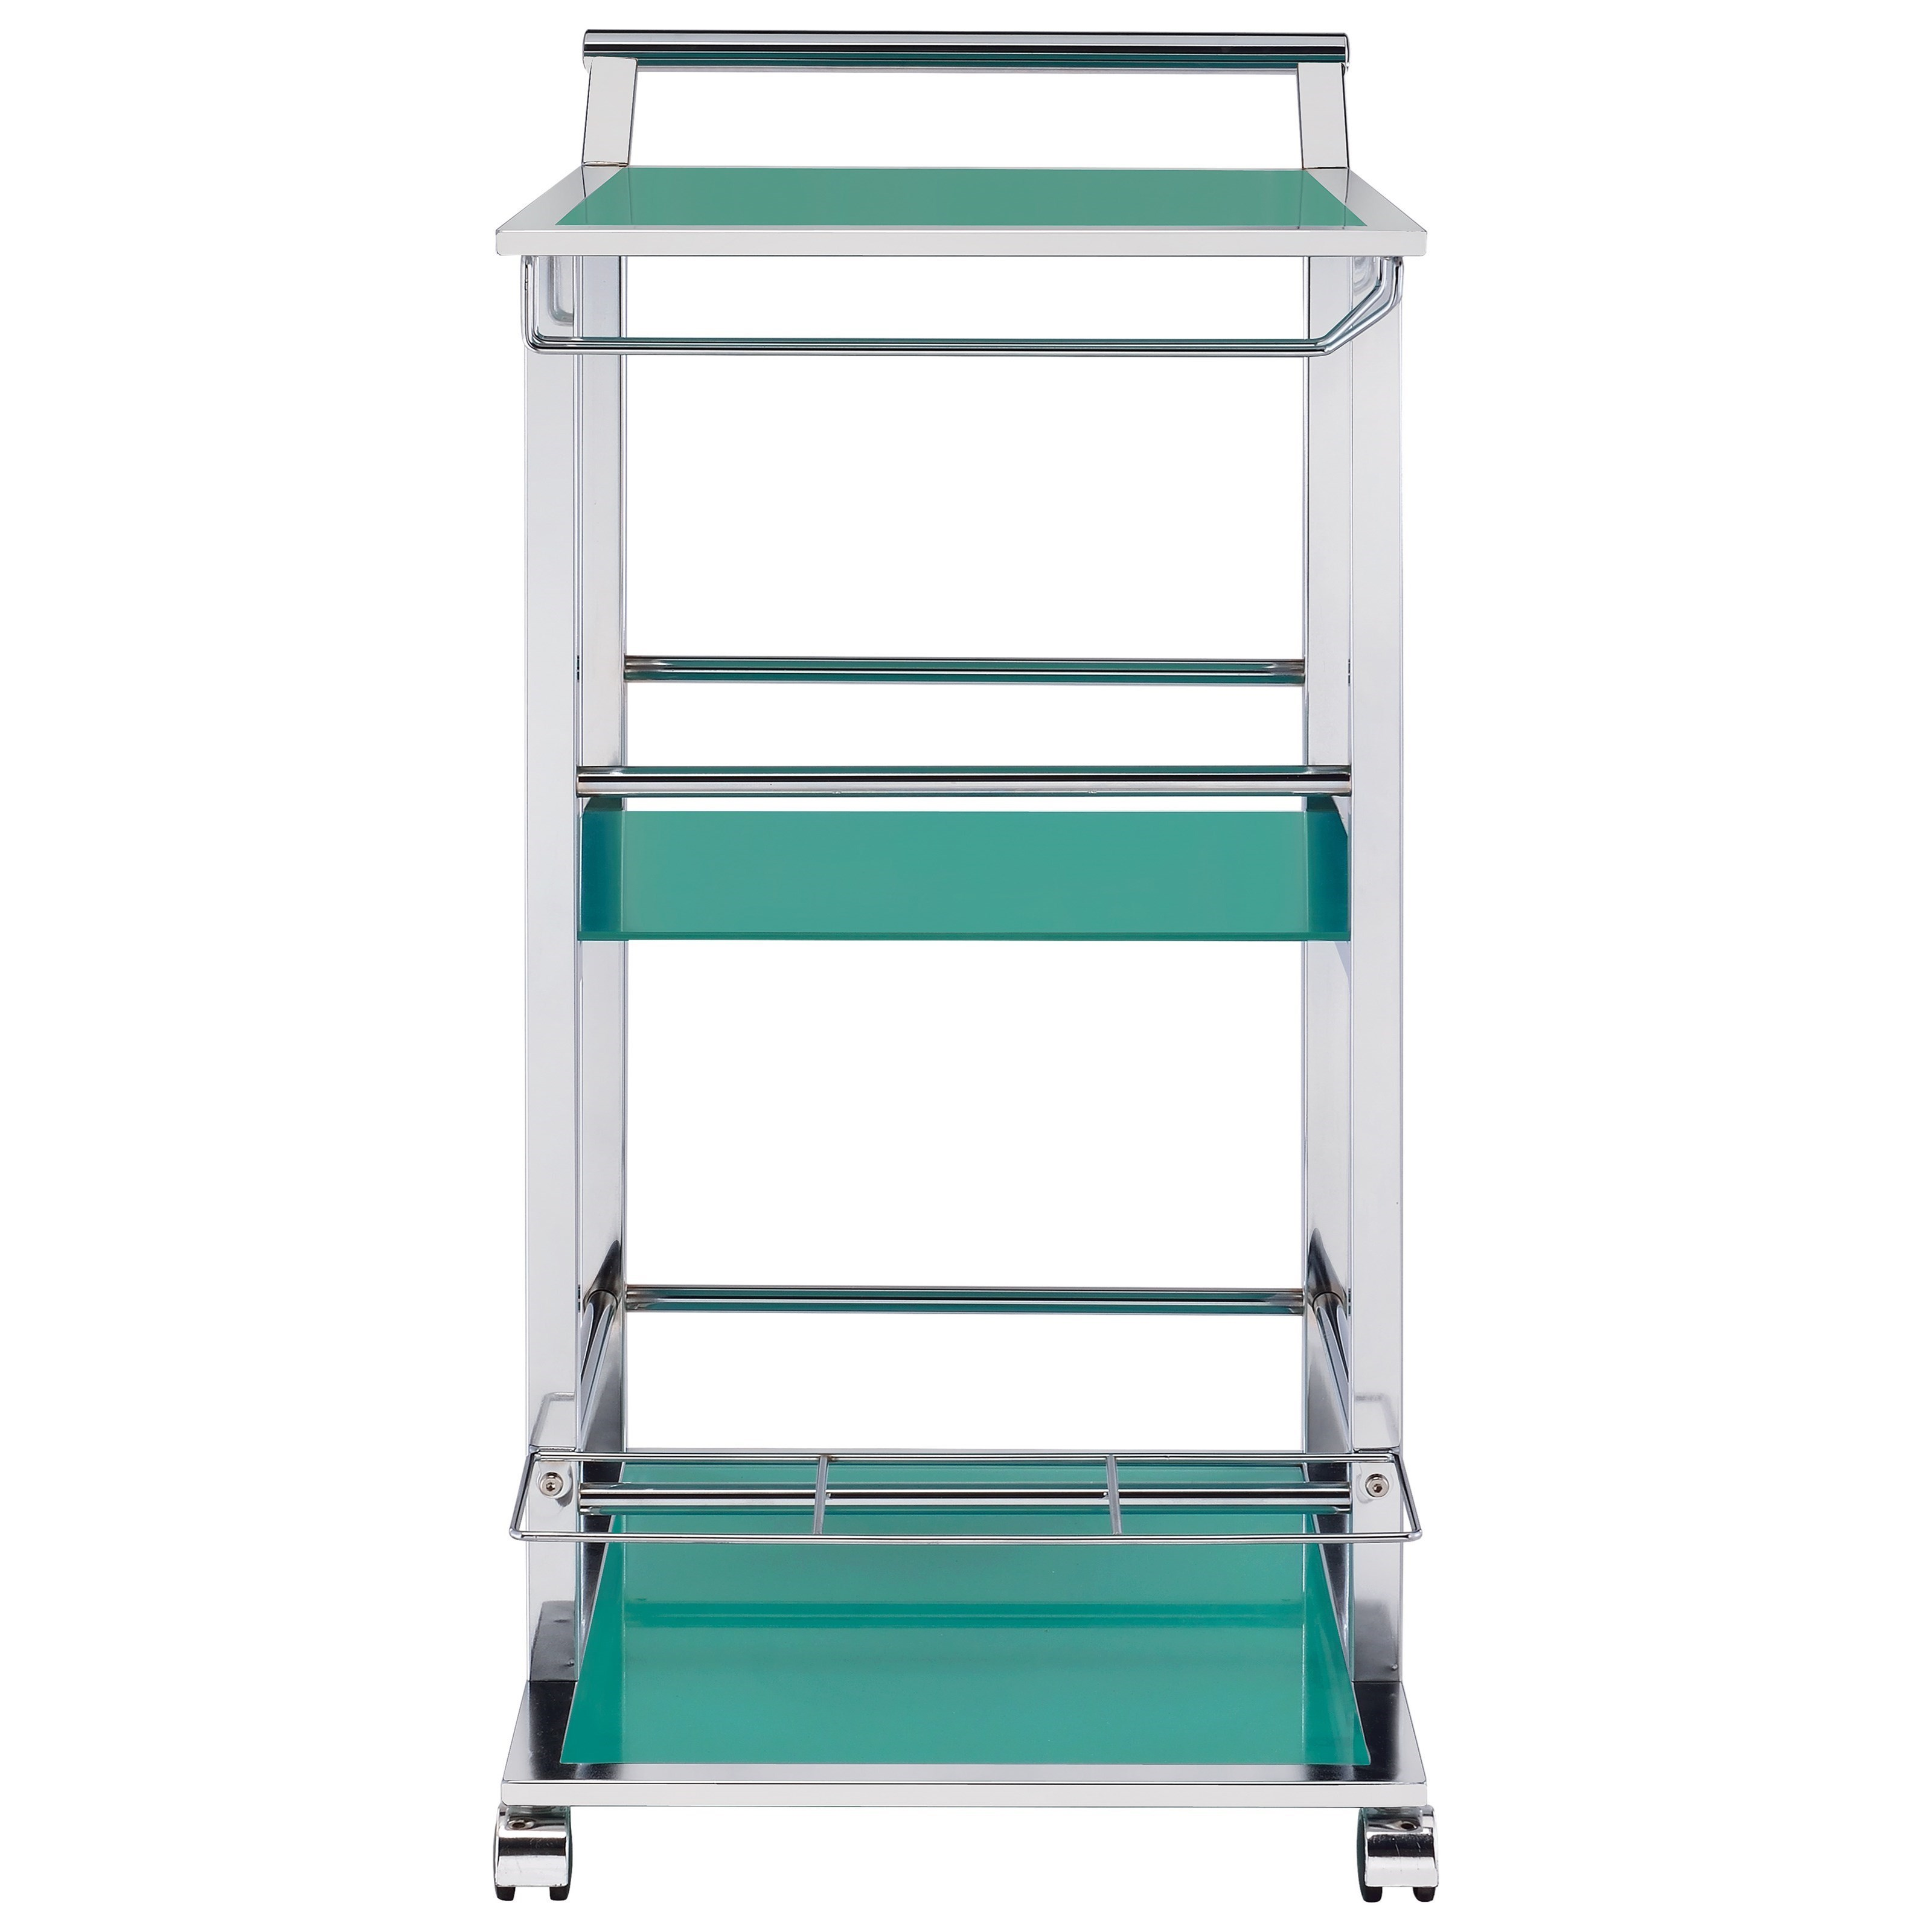 kitchen serving cart ceiling fans for the coaster carts contemporary with wine storage cartsserving